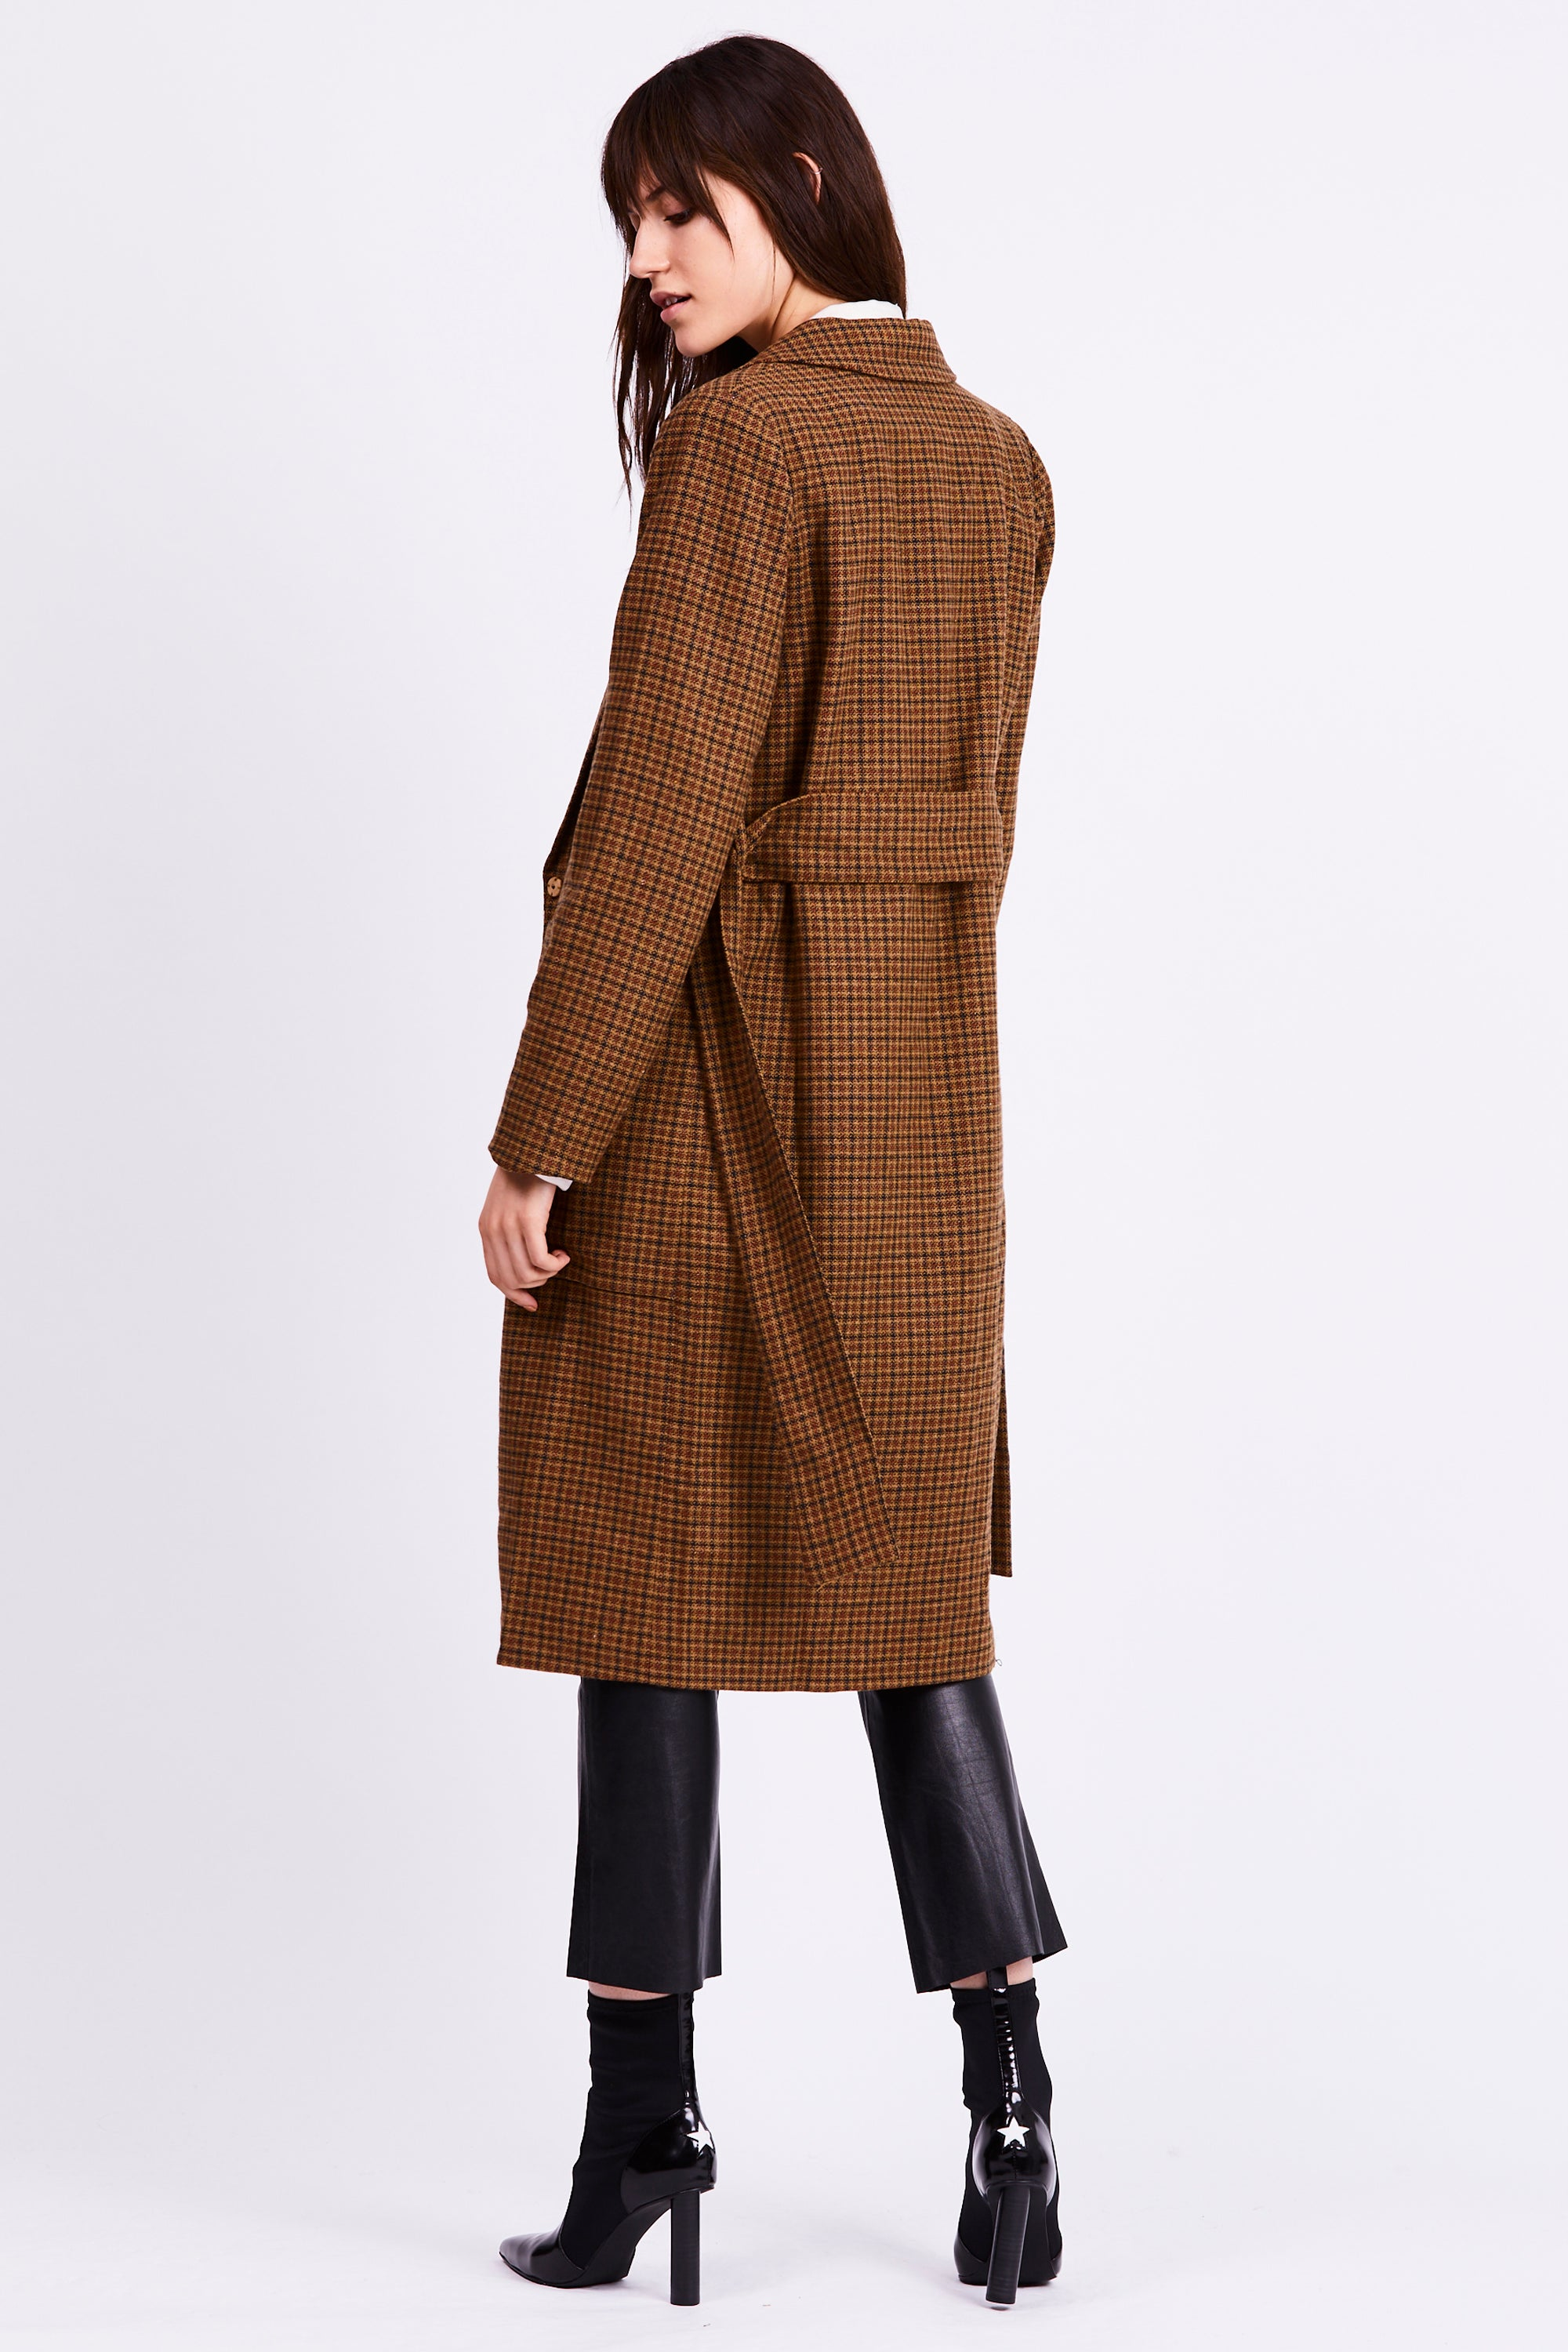 UNDER WRAPS WOOL COAT | TAN CHECK